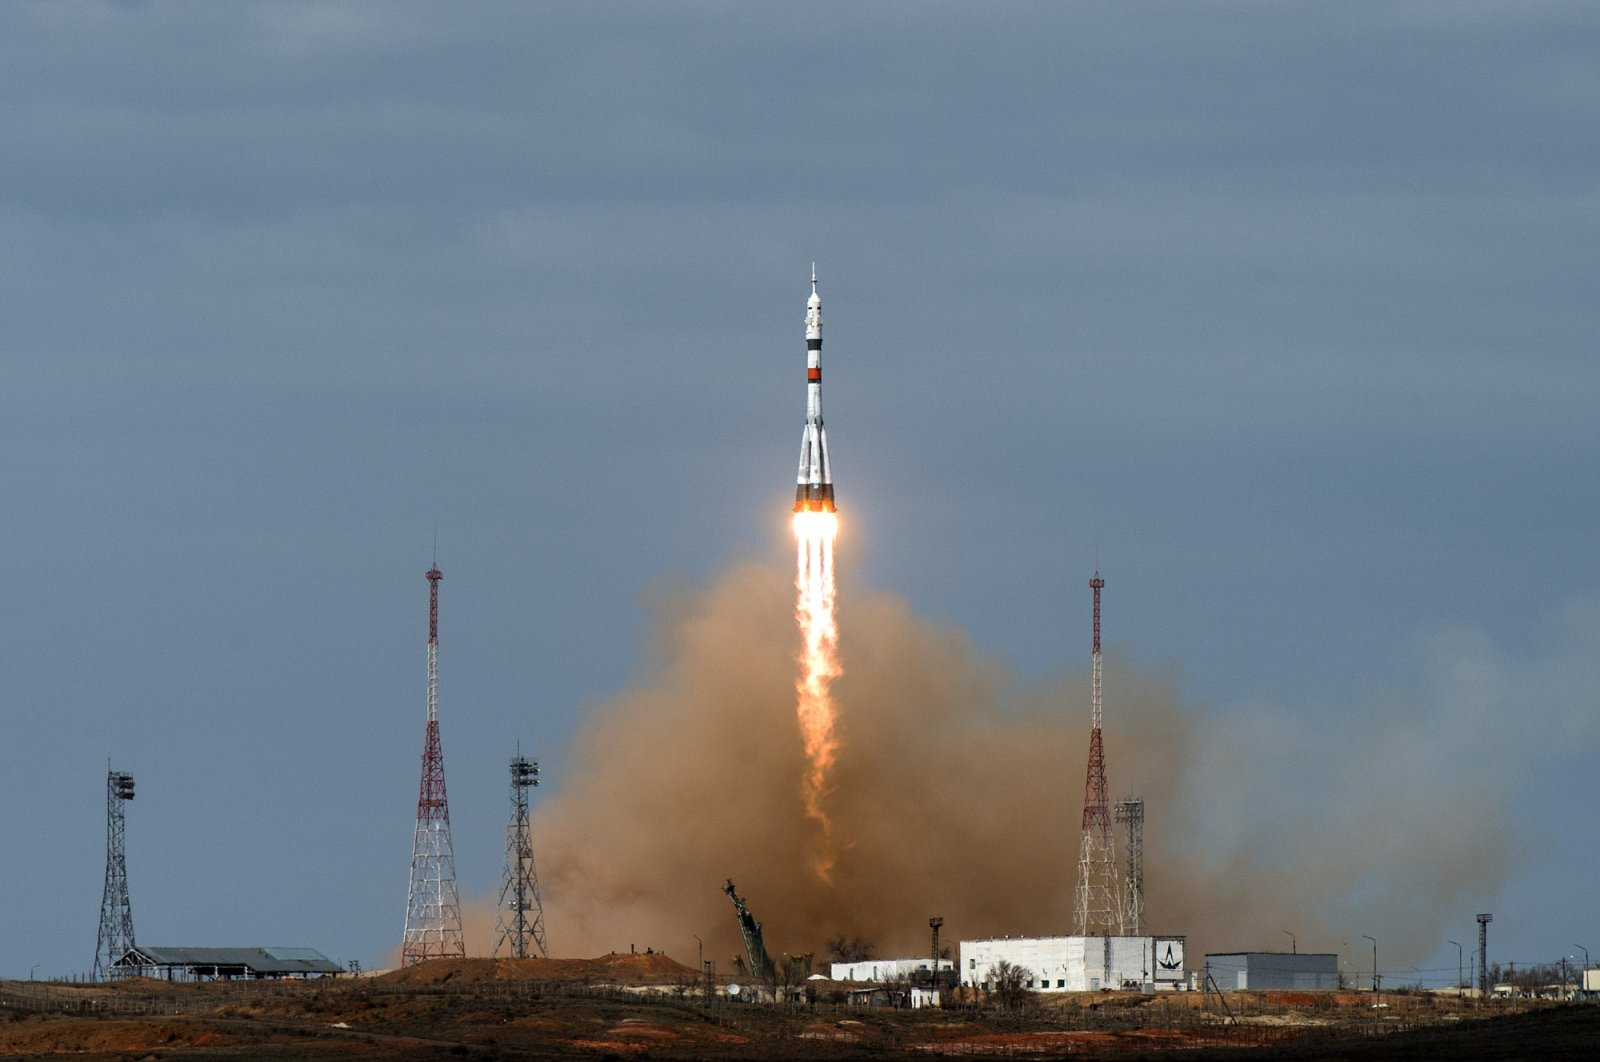 The Soyuz MS-16 spacecraft carrying the crew formed of Chris Cassidy of NASA, Anatoly Ivanishin and Ivan Vagner of the Russian space agency Roscosmos blasts off to the International Space Station (ISS) from the launchpad at the Baikonur Cosmodrome, Kazakhstan April 9, 2020. (Reuters Photo)